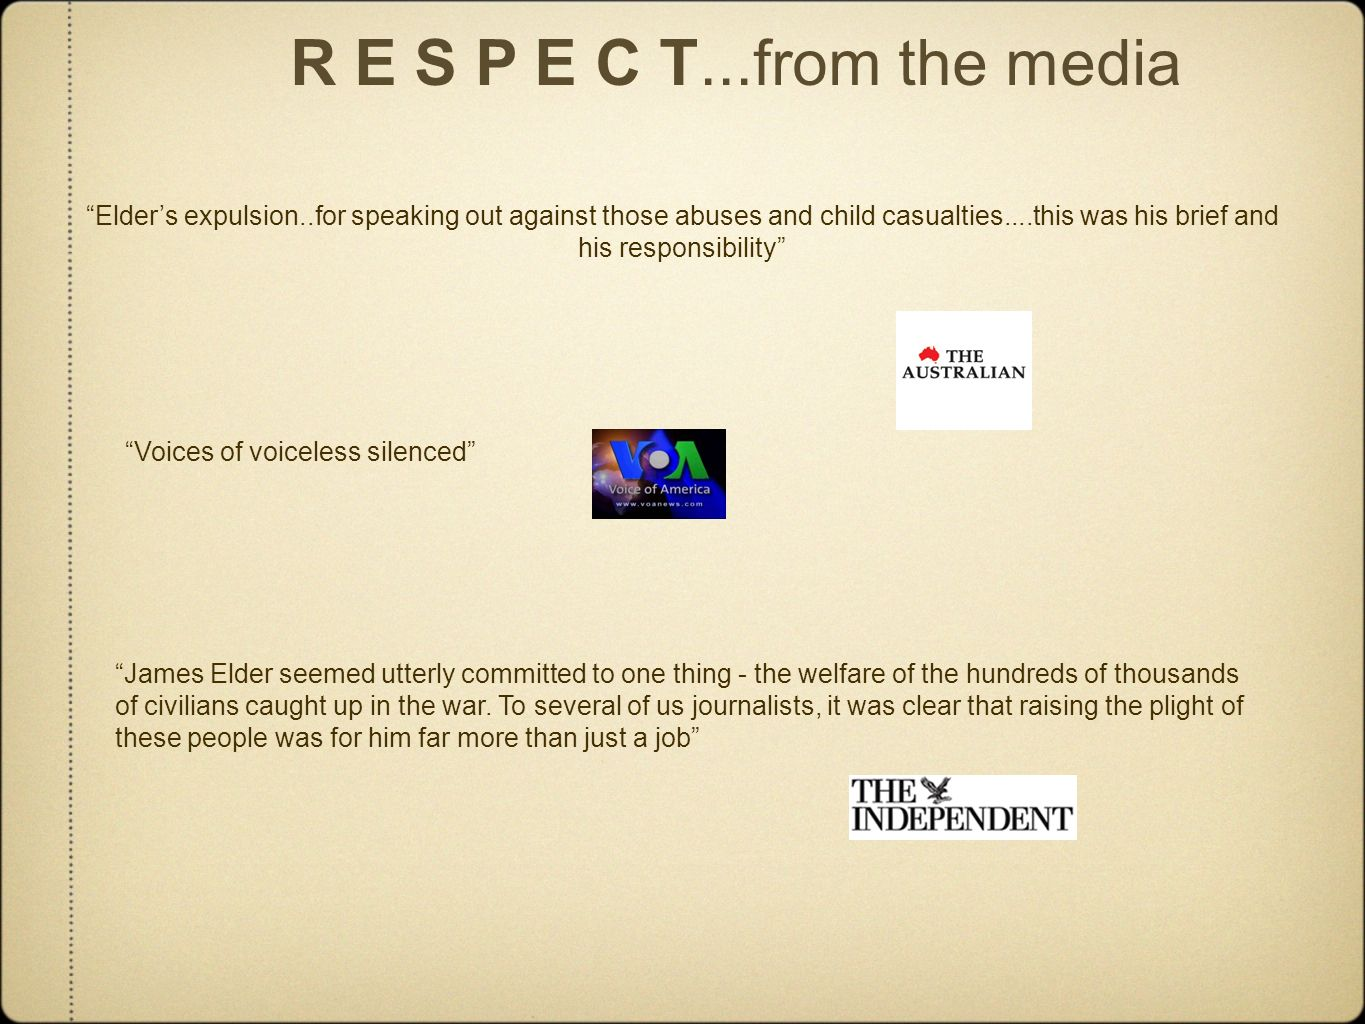 Elders expulsion..for speaking out against those abuses and child casualties....this was his brief and his responsibility R E S P E C T...from the media Voices of voiceless silenced James Elder seemed utterly committed to one thing - the welfare of the hundreds of thousands of civilians caught up in the war.